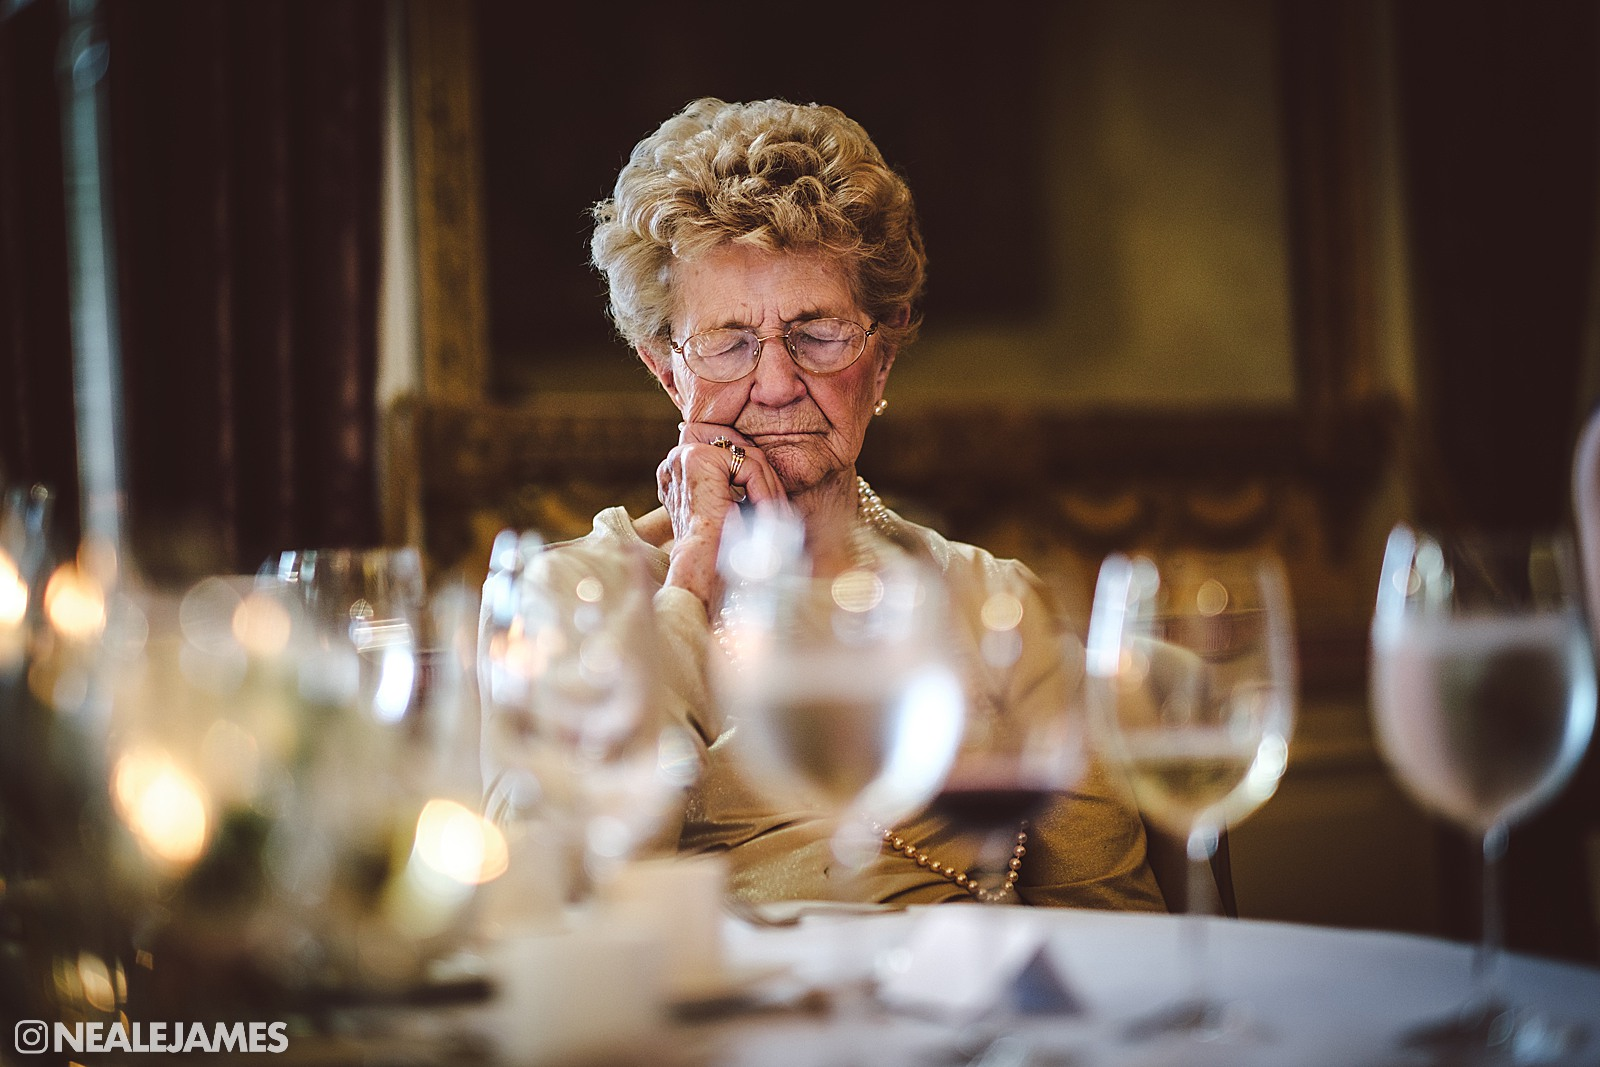 Colour photo of a grandmother who has fallen asleep during a wedding speech